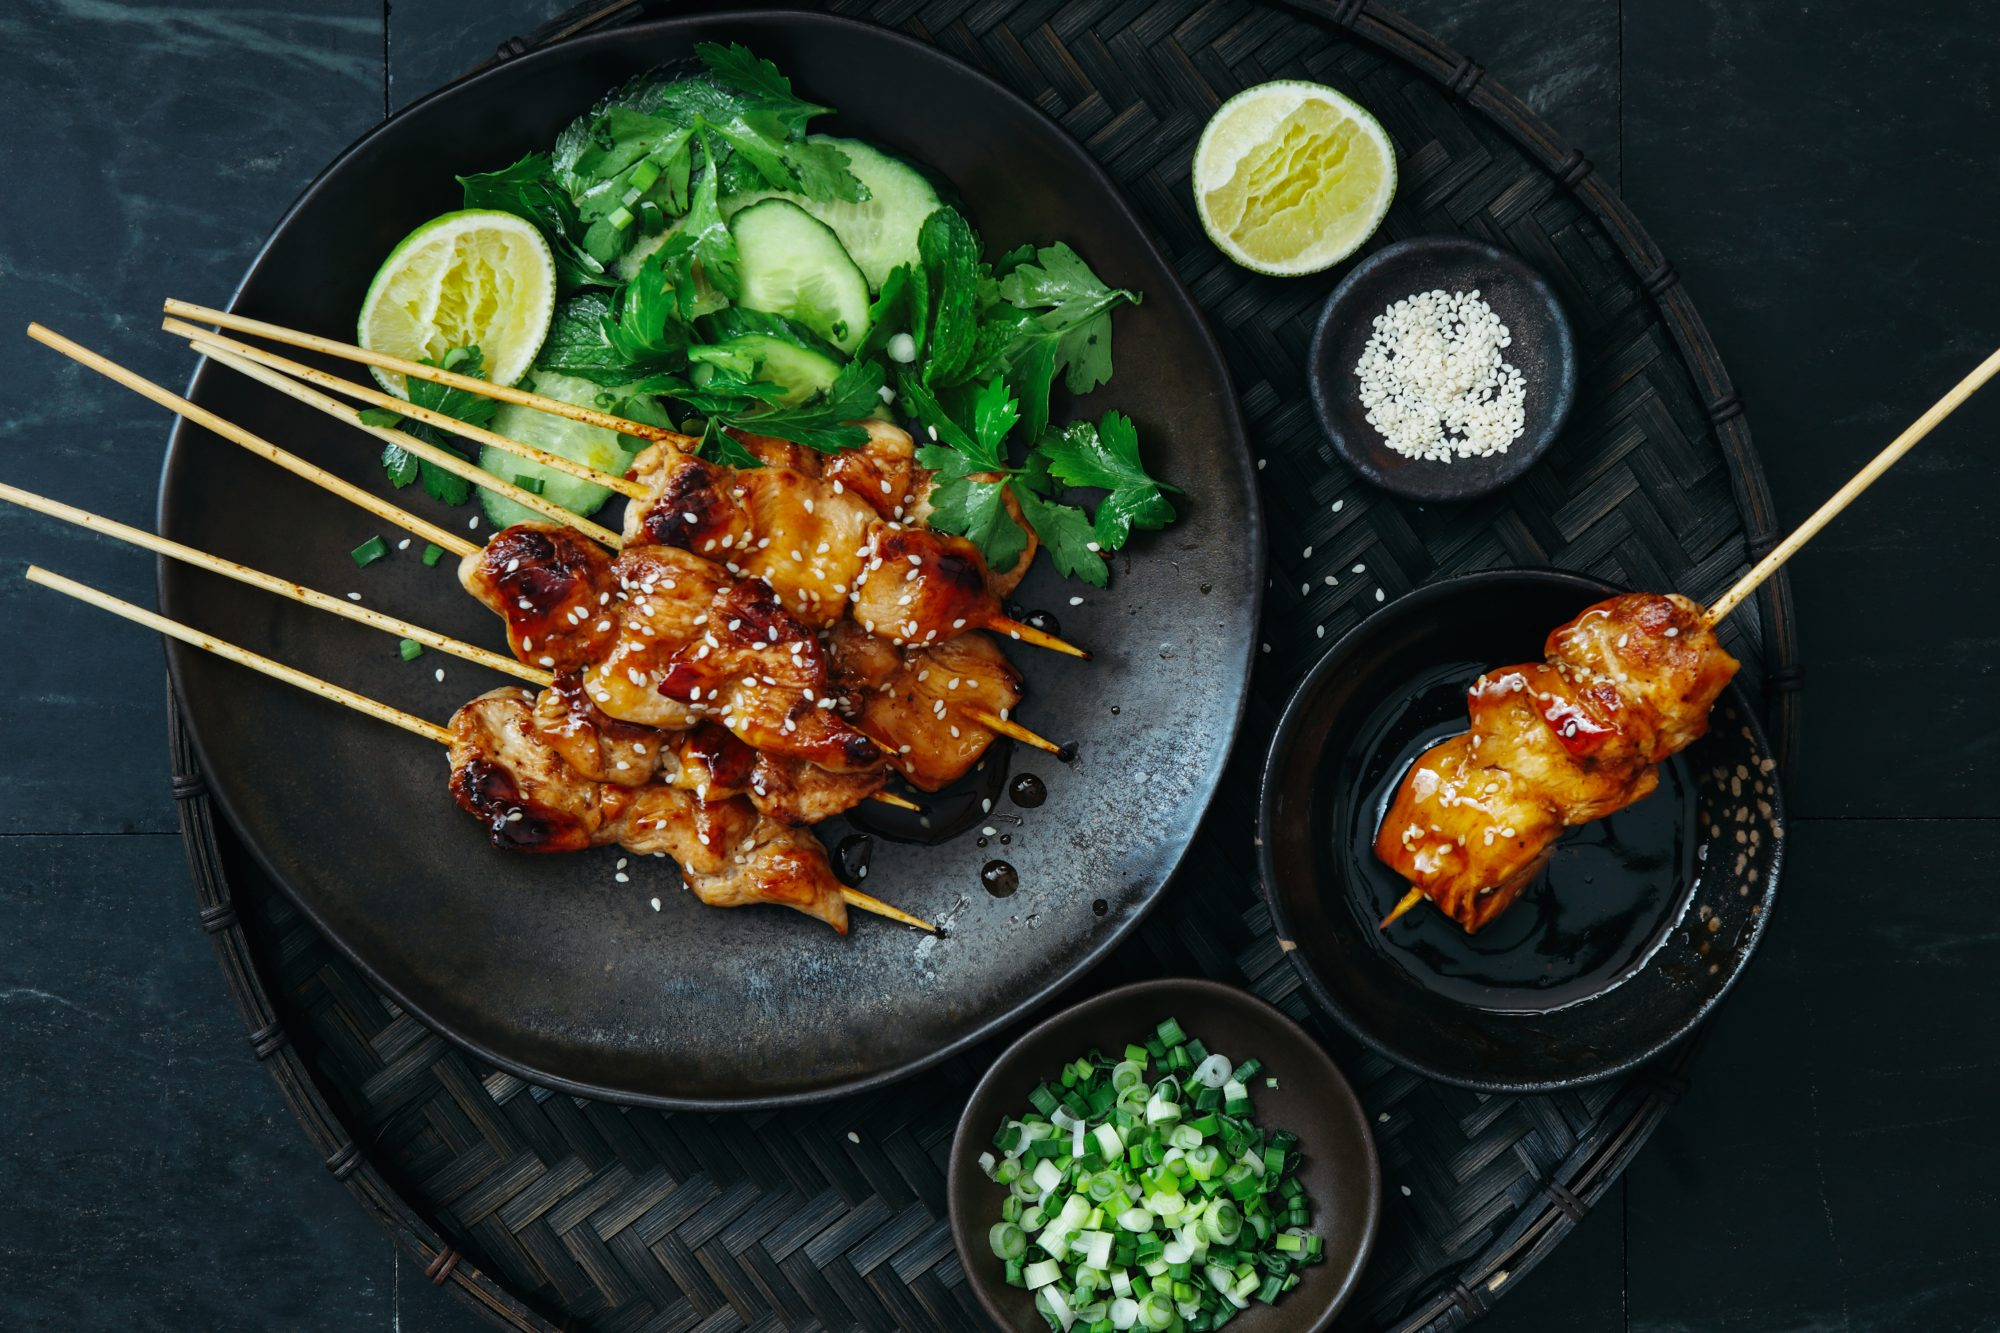 Japanese chicken yakitori skewers with vegetables salad on dark background